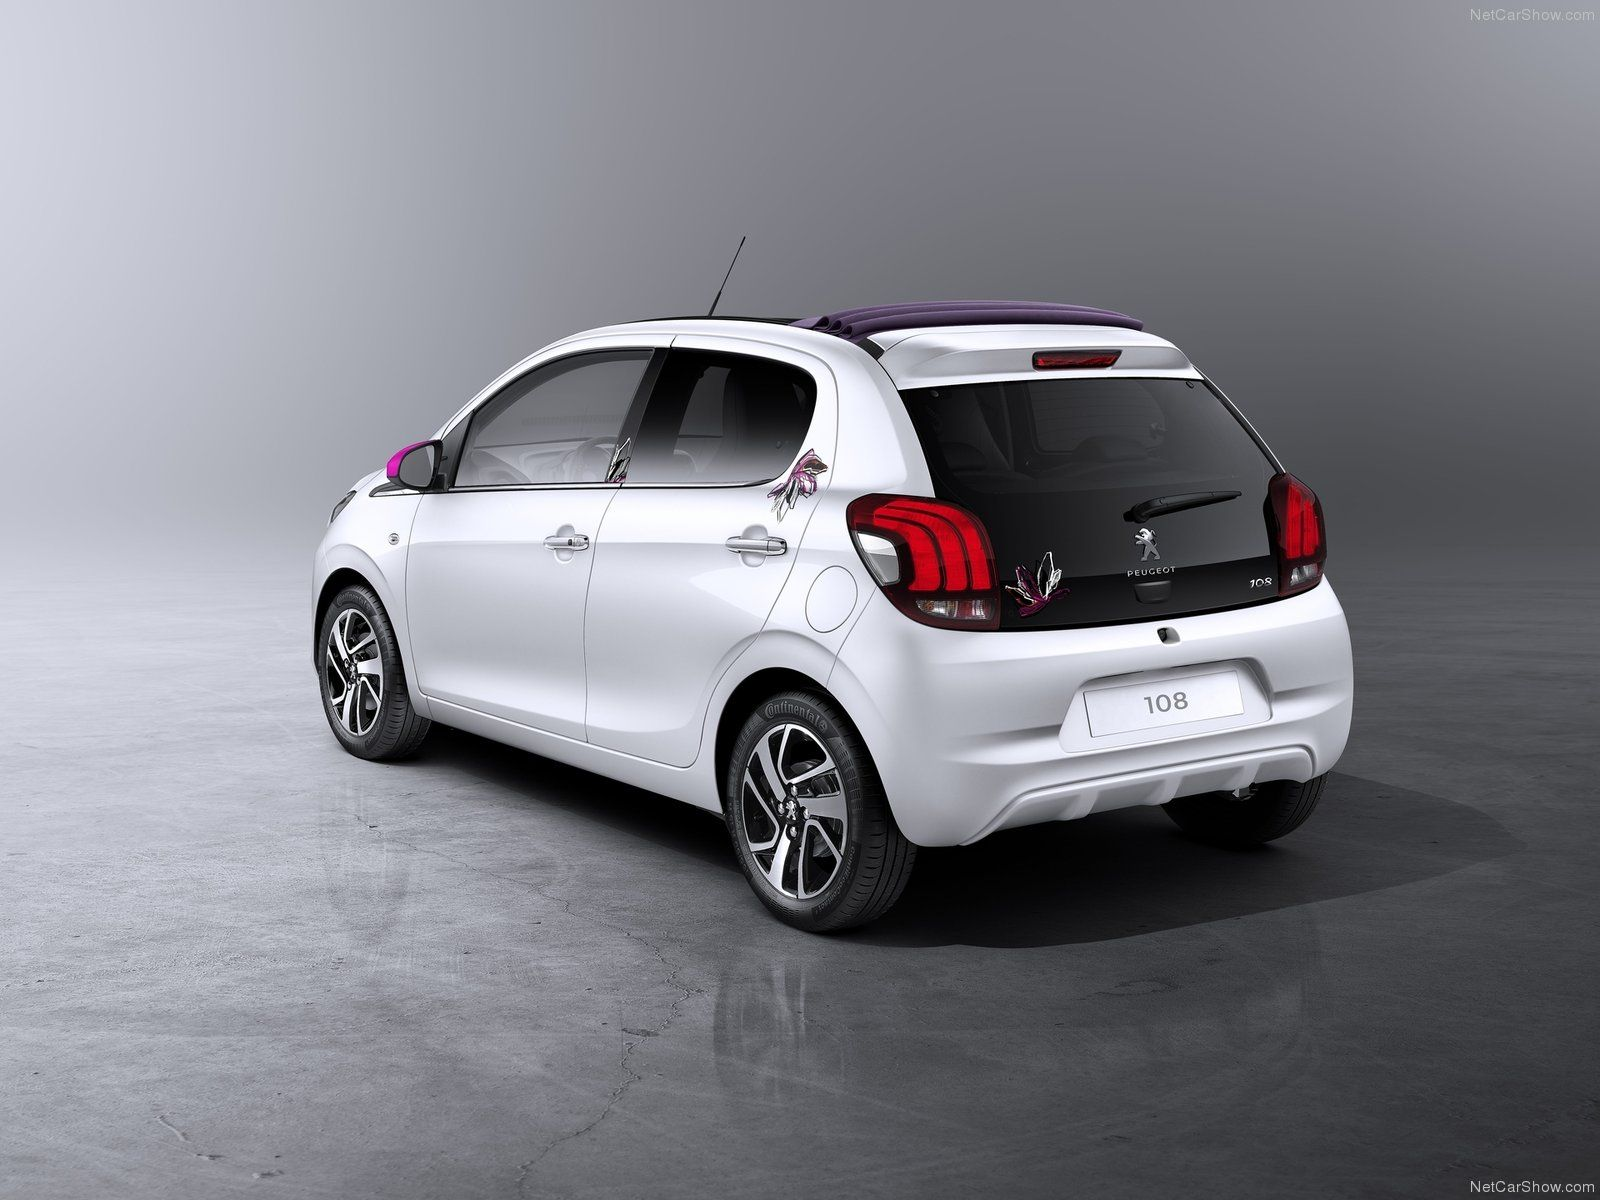 Peugeot 108 2014 2015 In White Blanc Weiss Wit Compact City